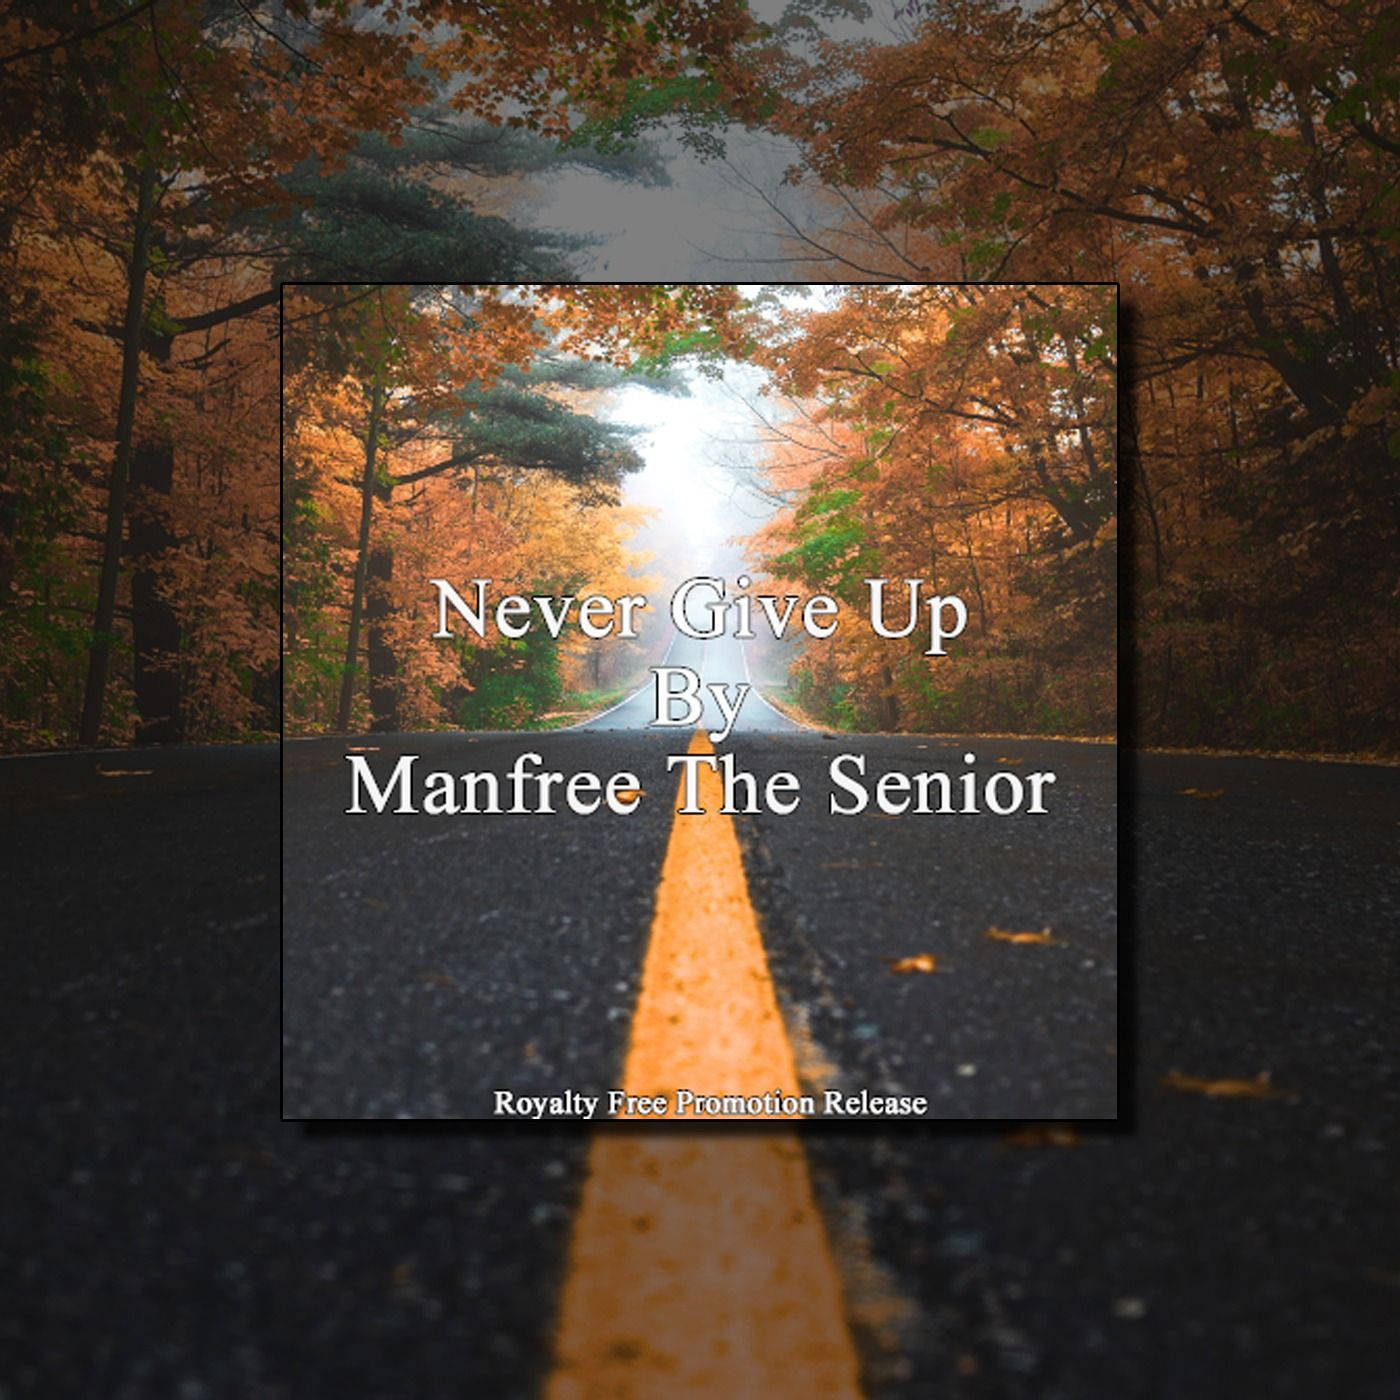 Never Give Up [RFP Release] by Manfree The Senior from Royalty Free